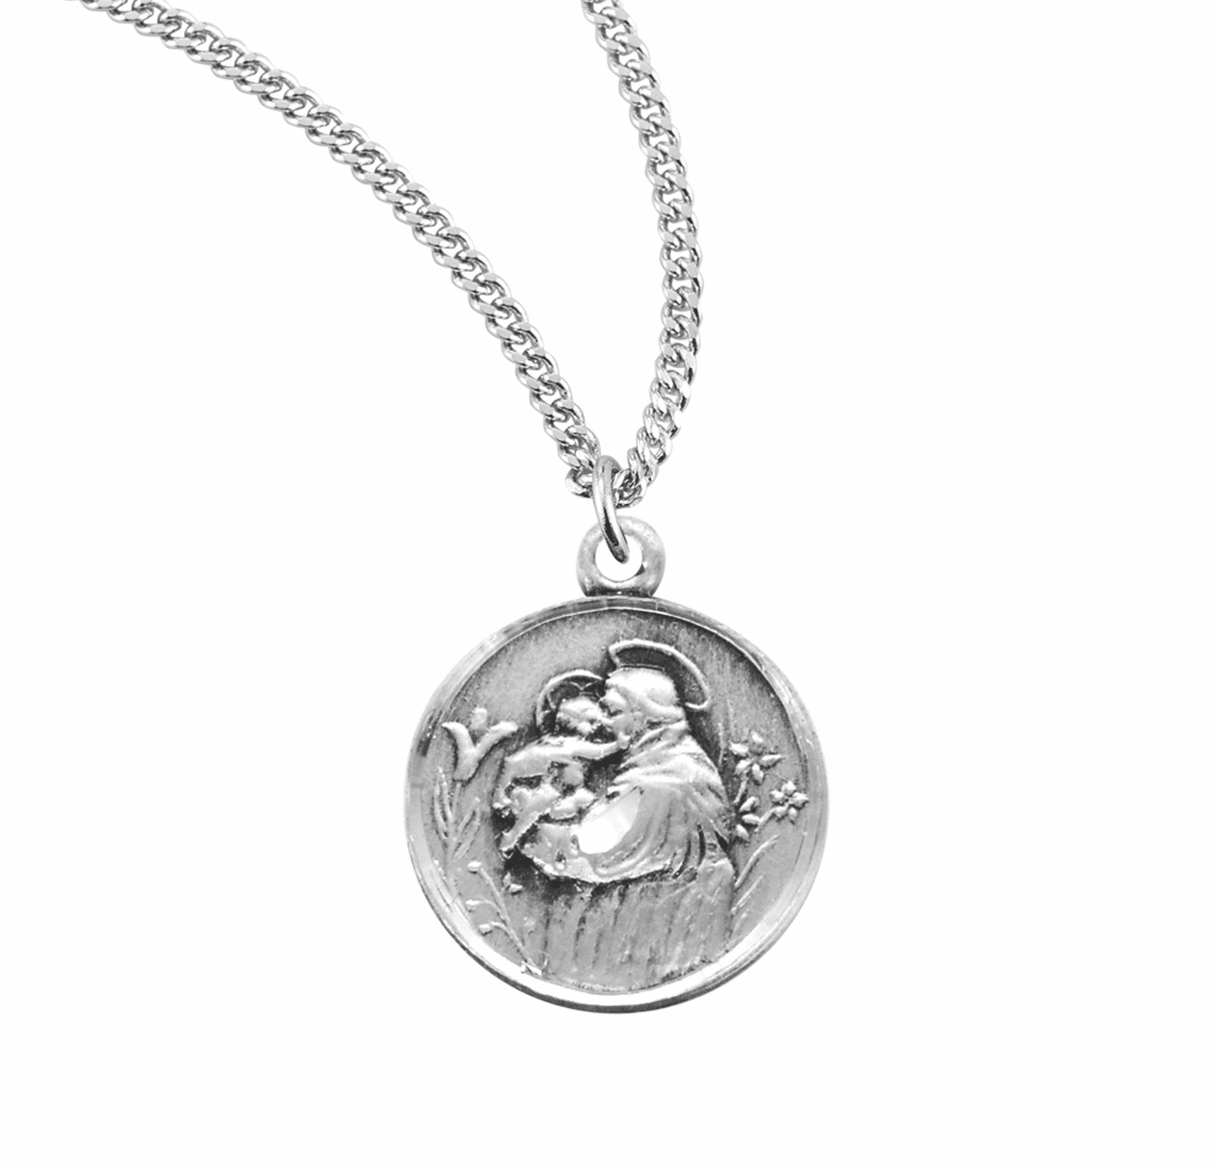 St. Anthony Medal w/Child Jesus Necklace by HMH Religious